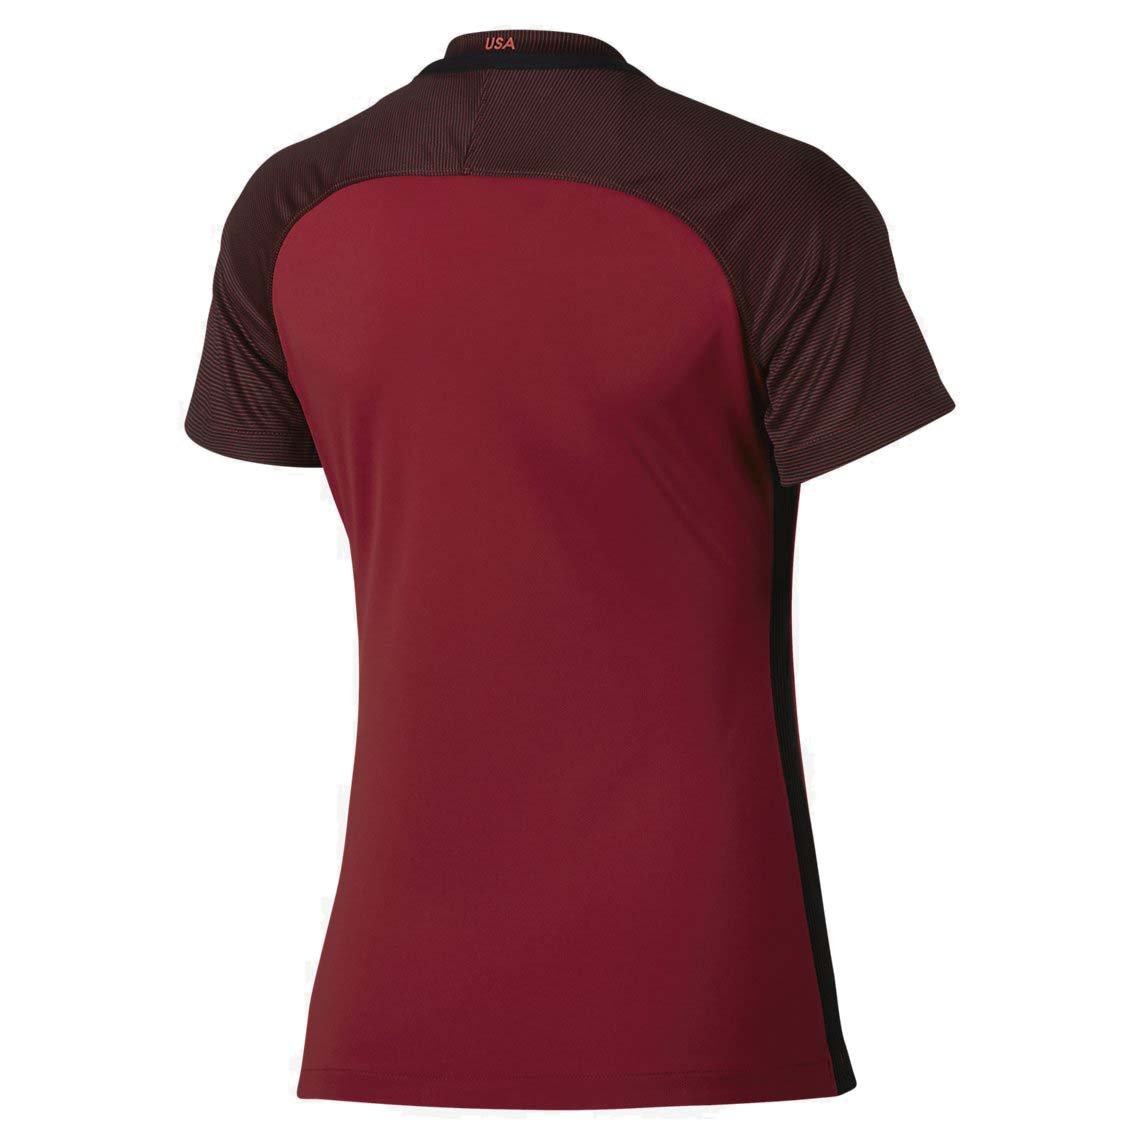 Nike USA Womens 3rd Jersey Gym RED